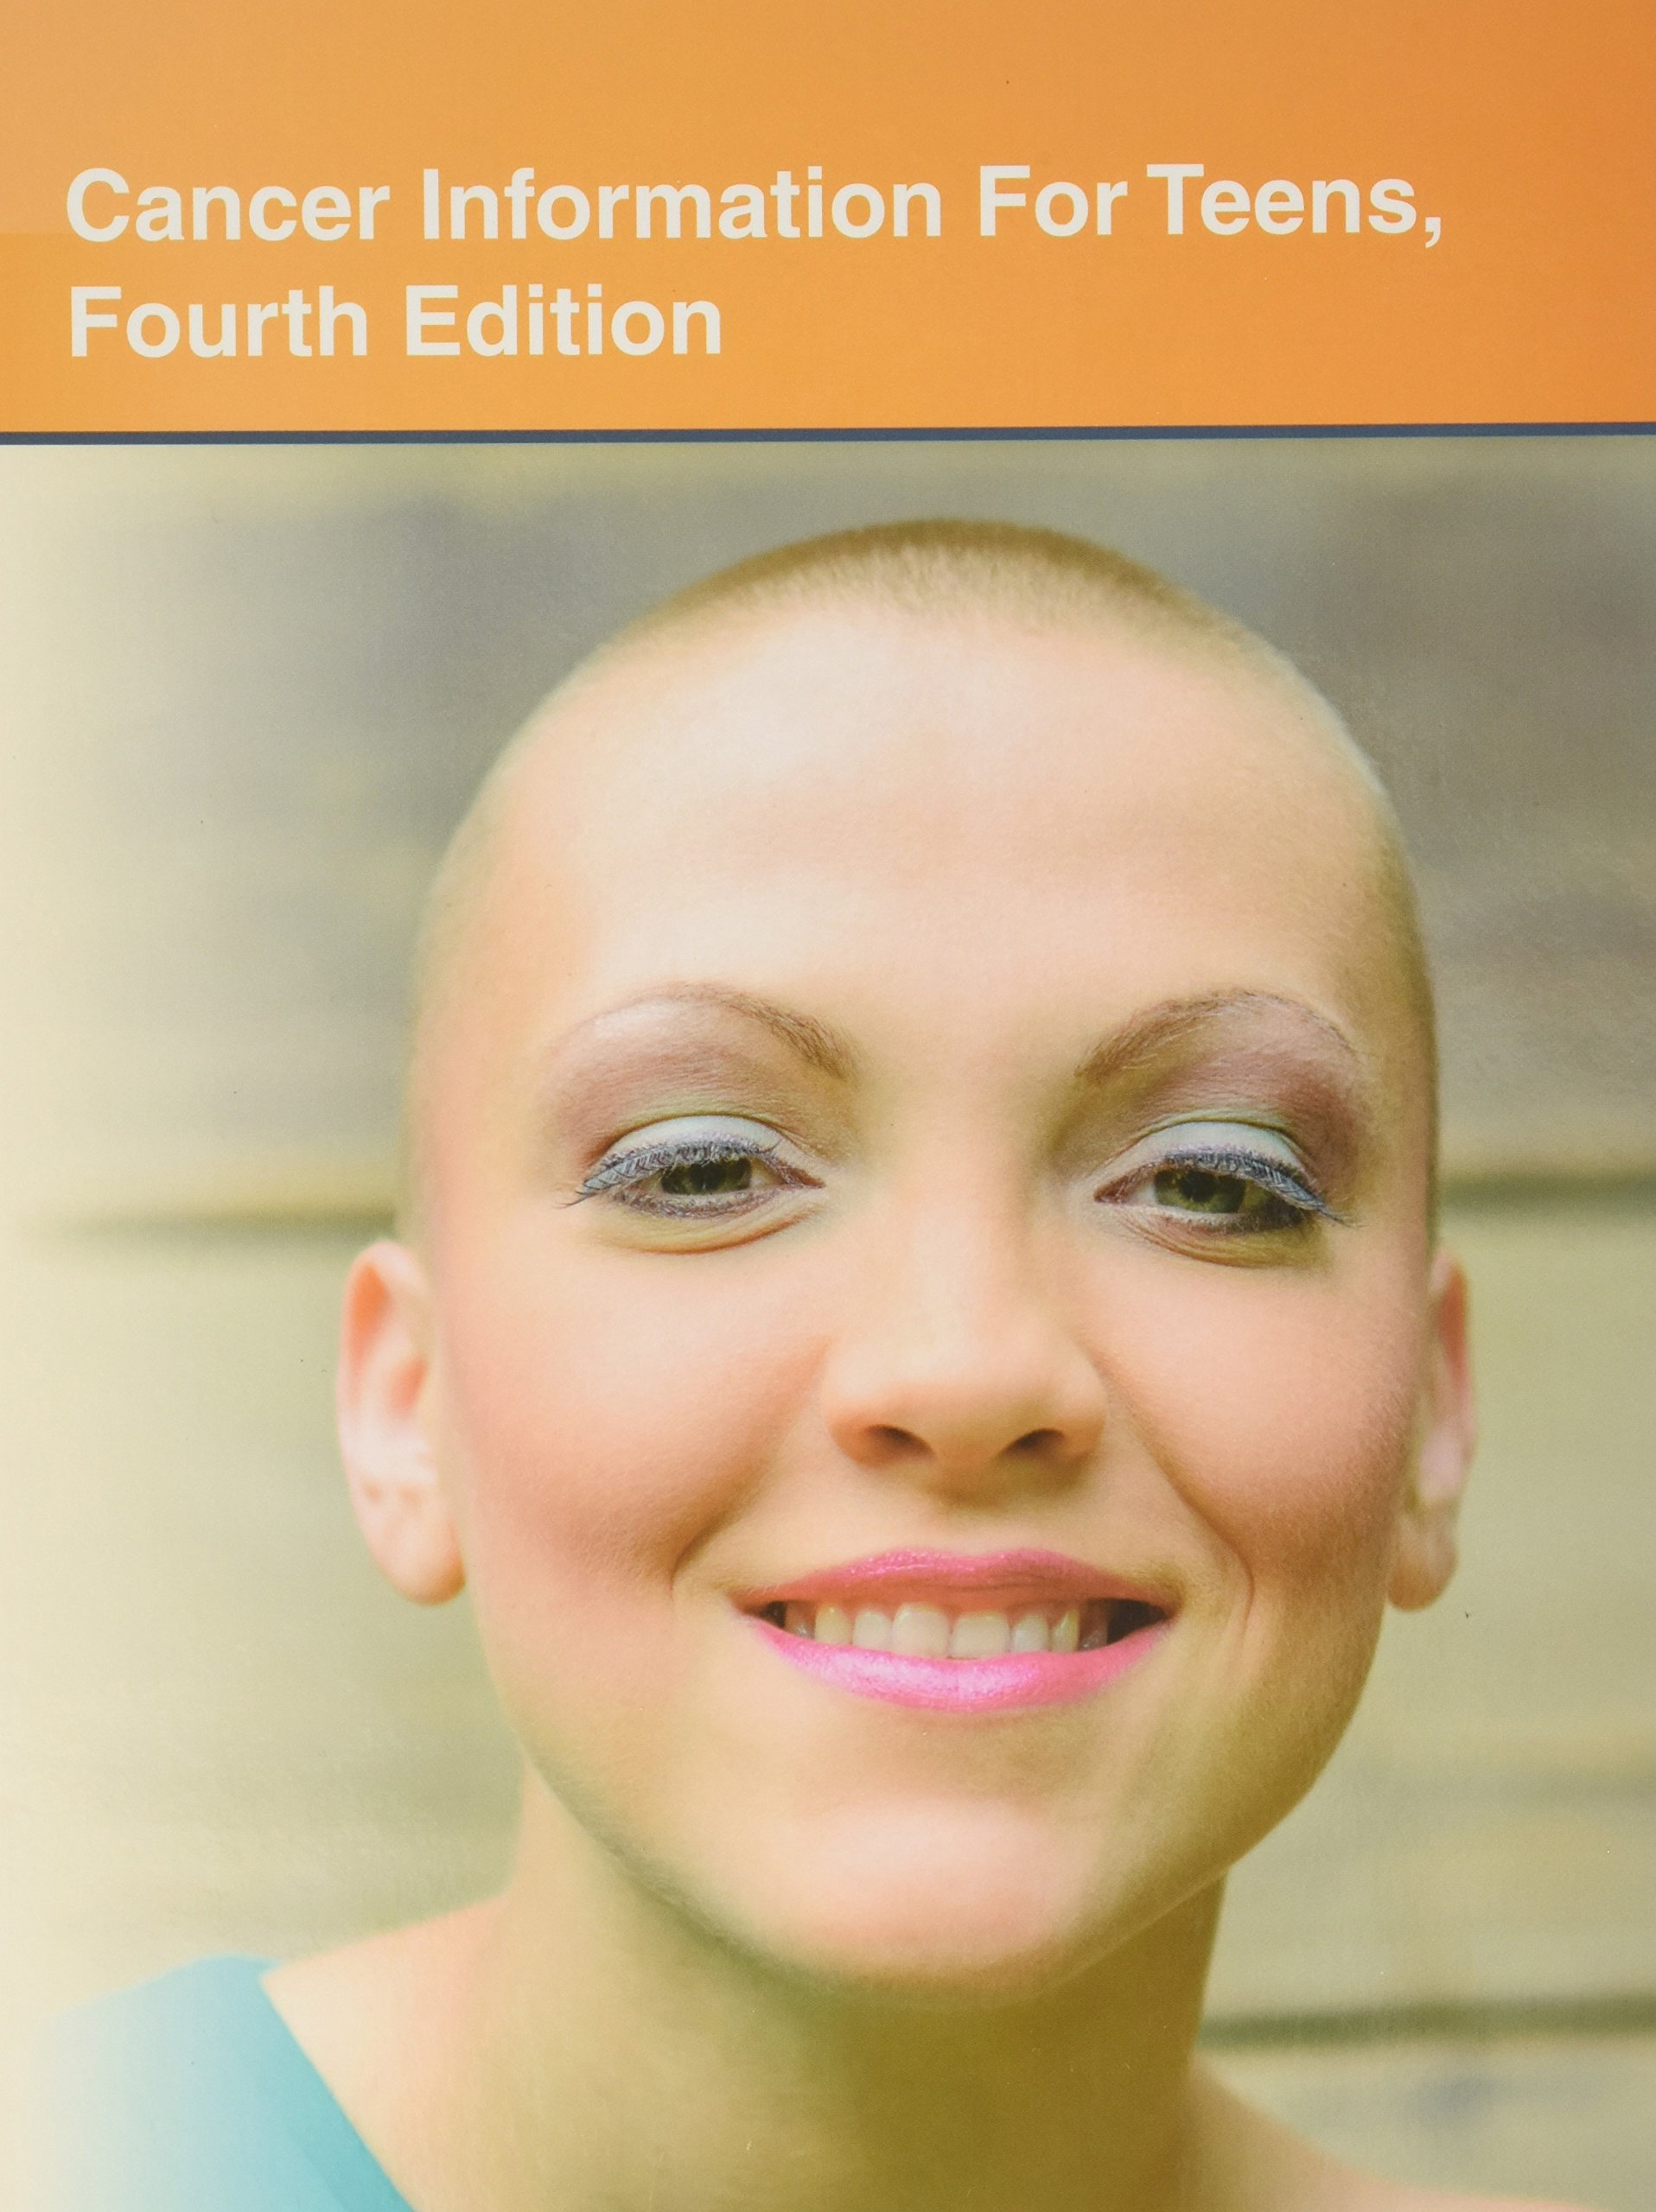 Buy Cancer Information For Teens Health Tips About Cancer Prevention Risks Diagnosis And Treatment Including Facts About Cancers Of Most Concern To With Caner In Loved Ones Teen Health Series Book